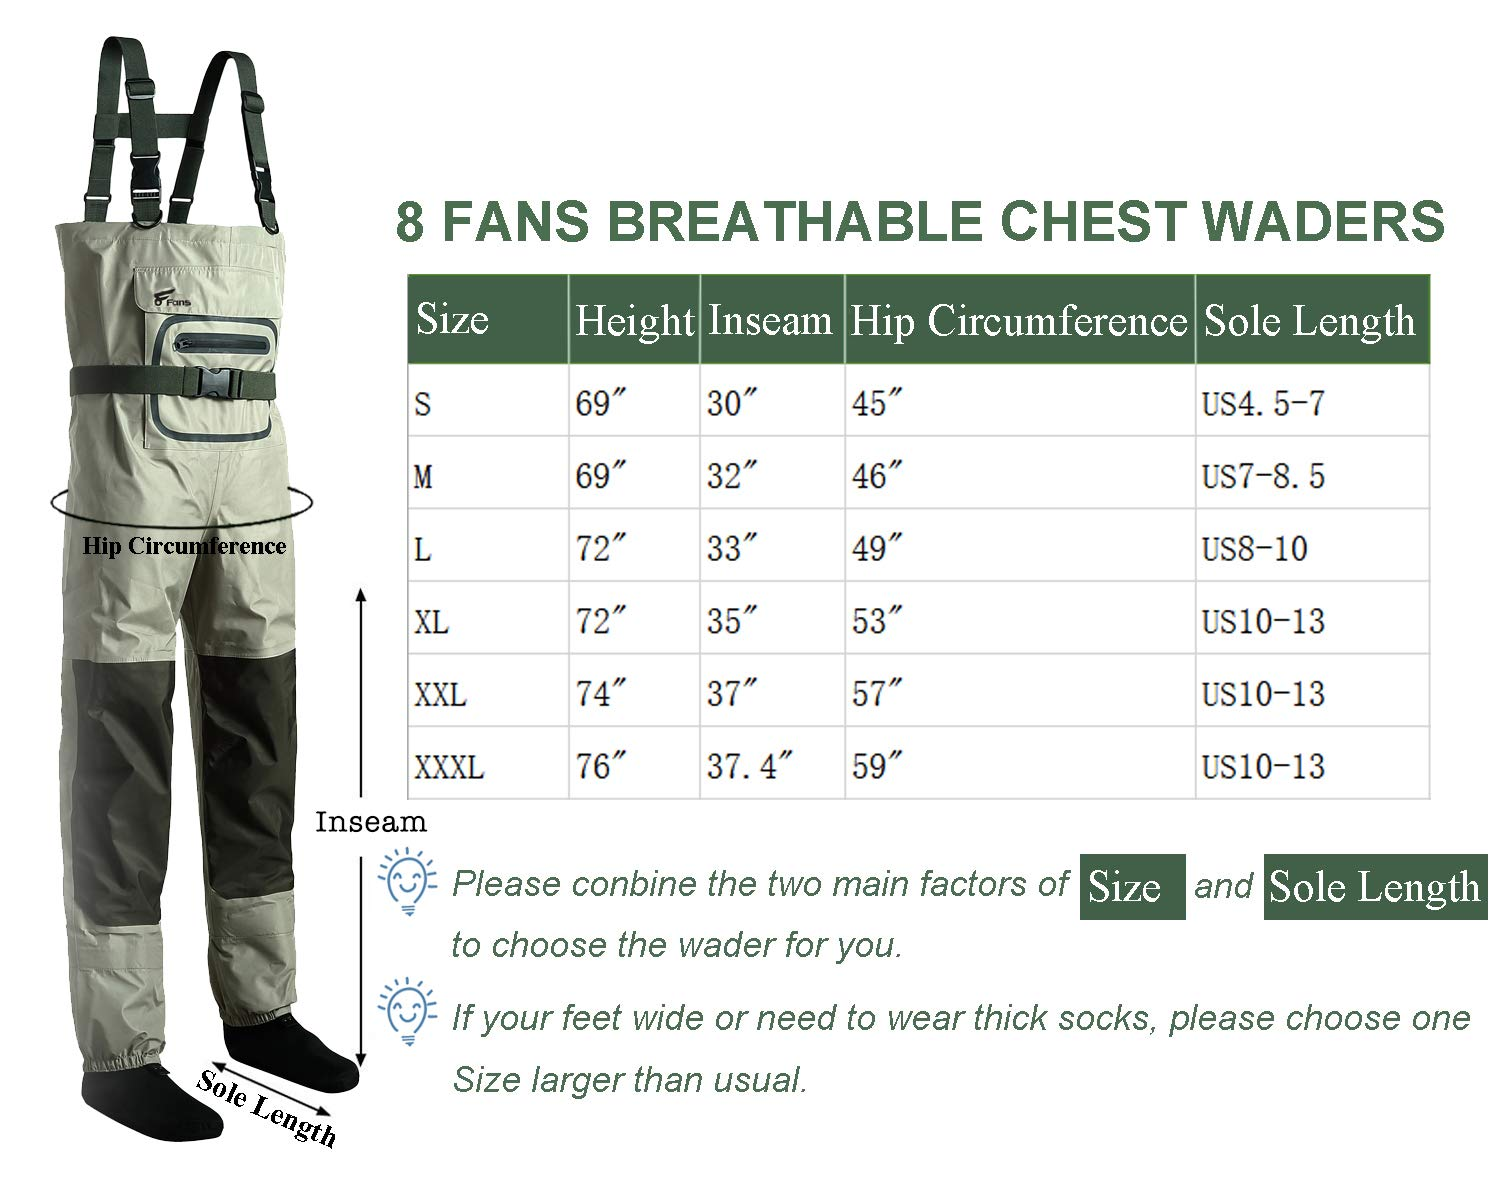 8 Fans Men s Fishing Chest Waders – 3-Ply Durable Breathable and Waterproof with Neoprene Stocking Foot Insulated Chest Waders, for Duck Hunting, Fly Fishing, A Mesh Storage Bag Included